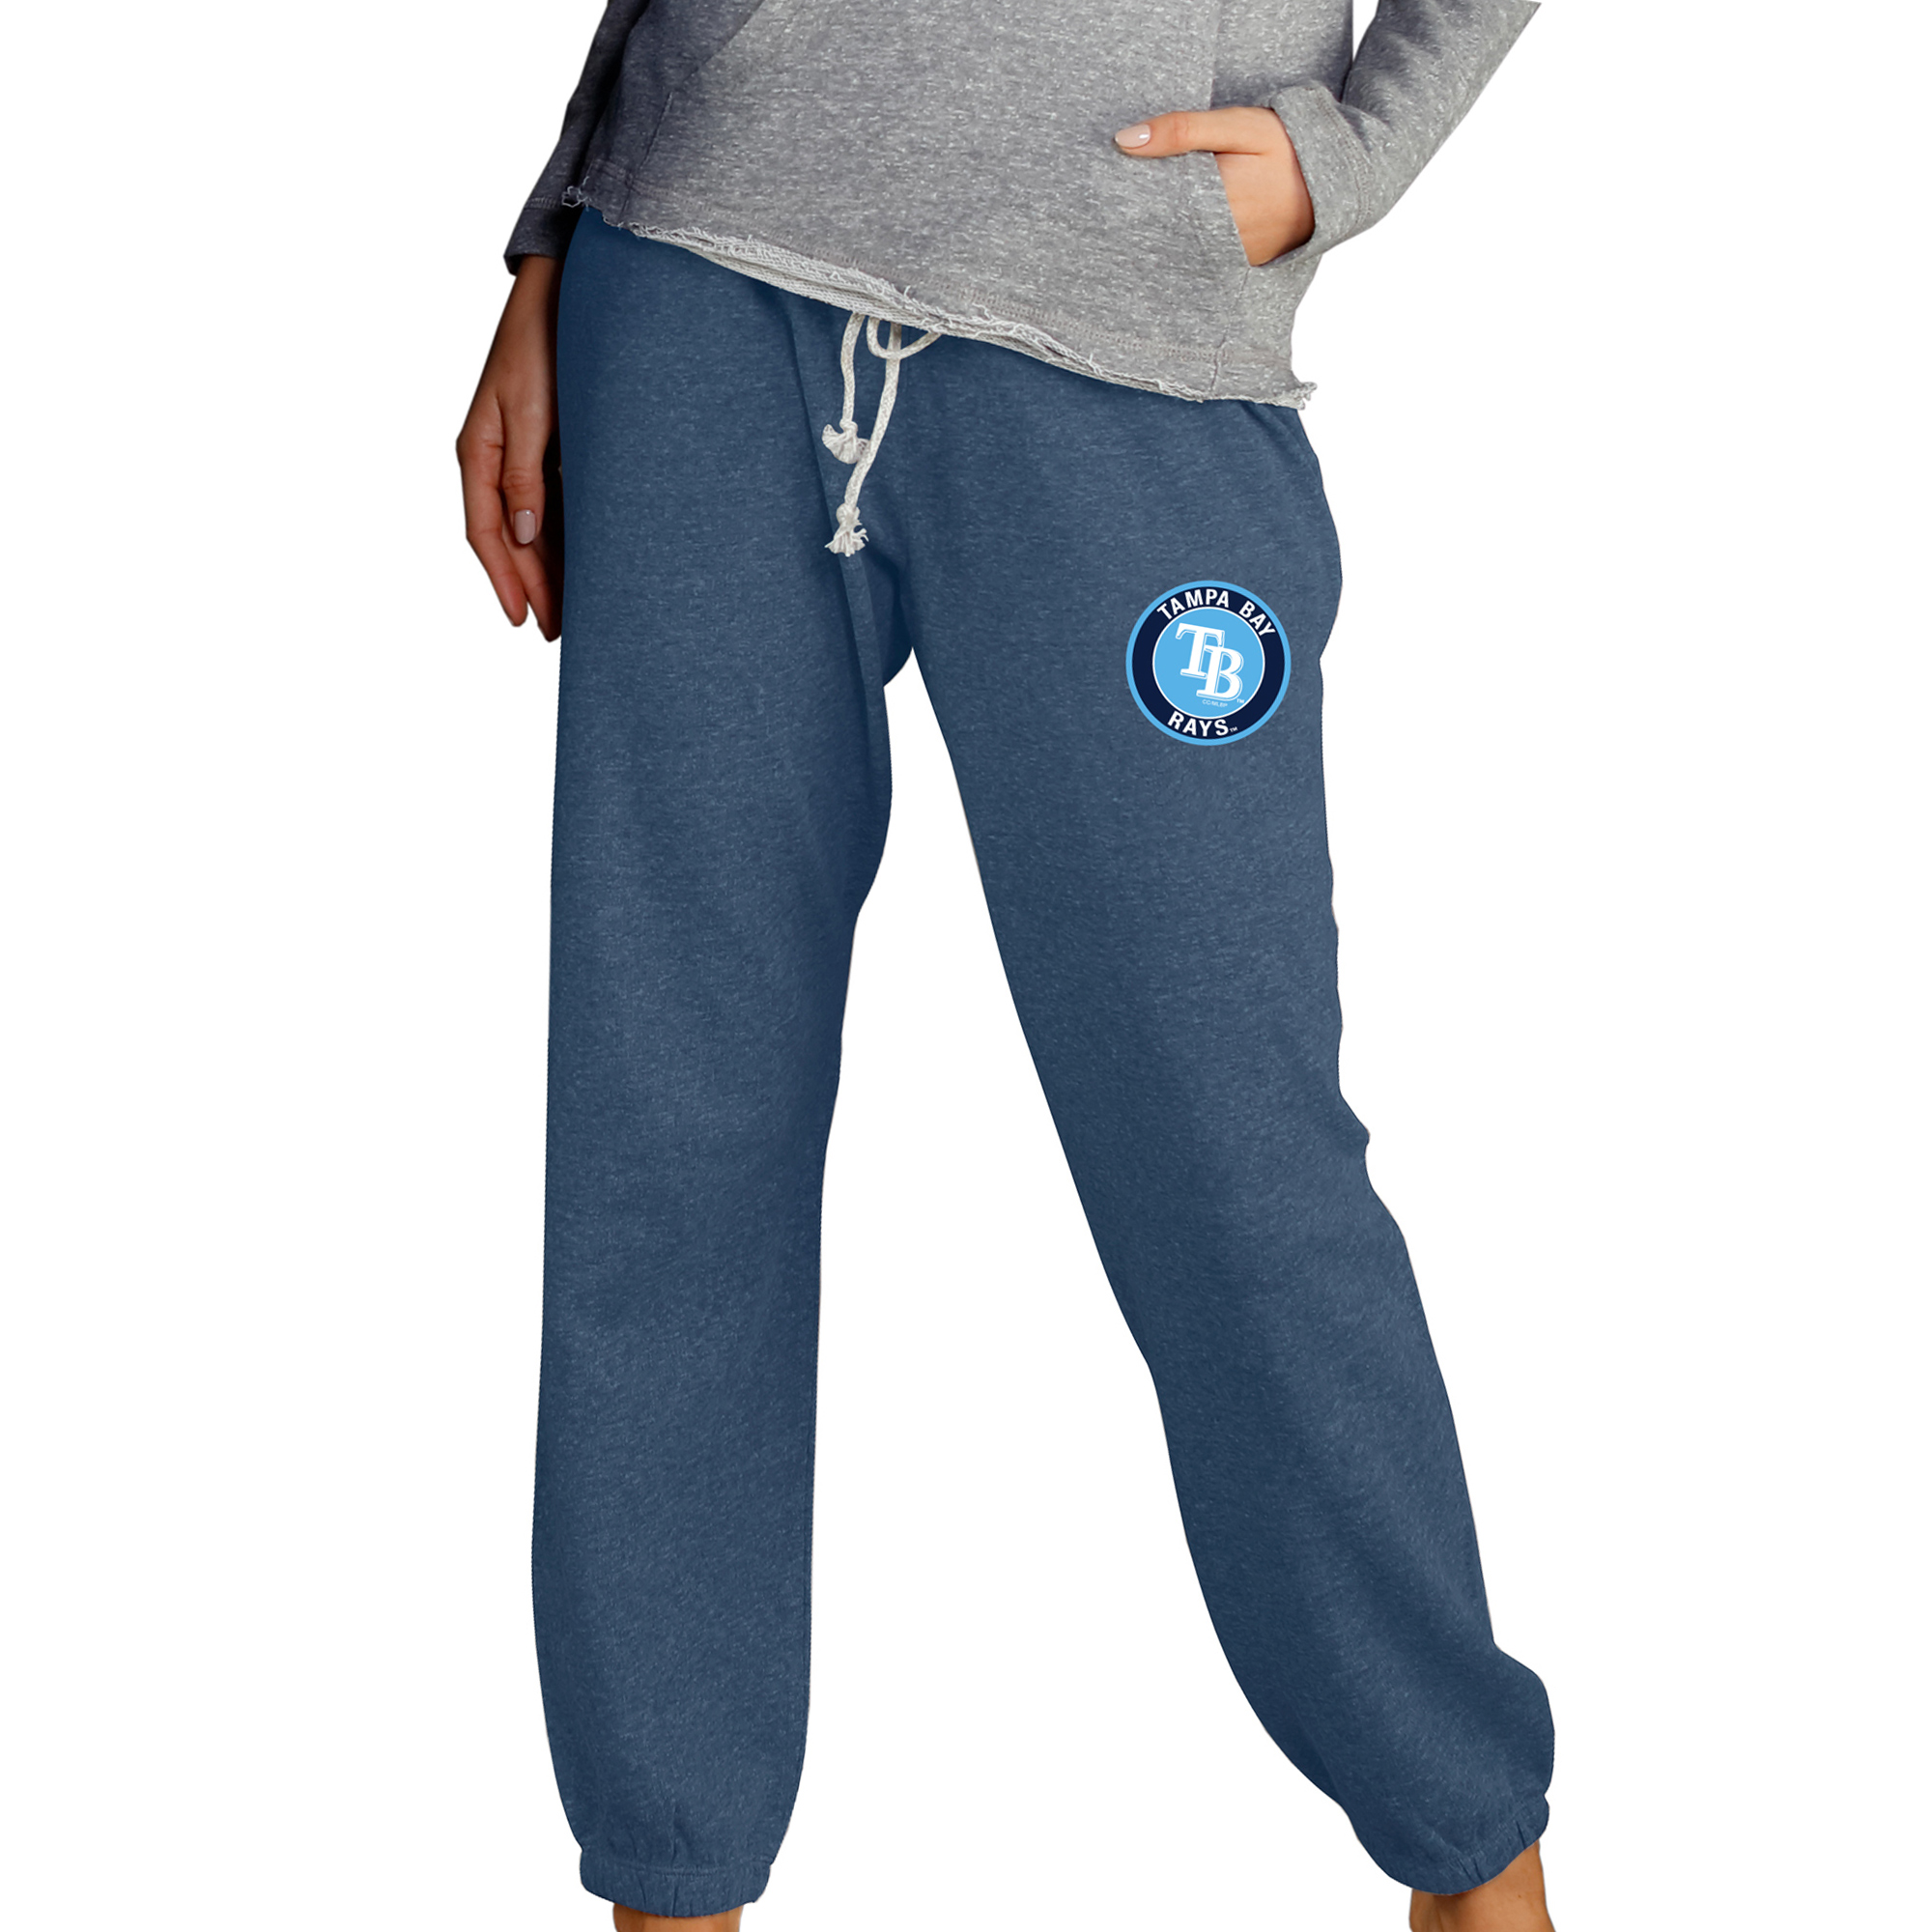 Tampa Bay Rays Concepts Sport Women's Mainstream Knit Pants - Navy